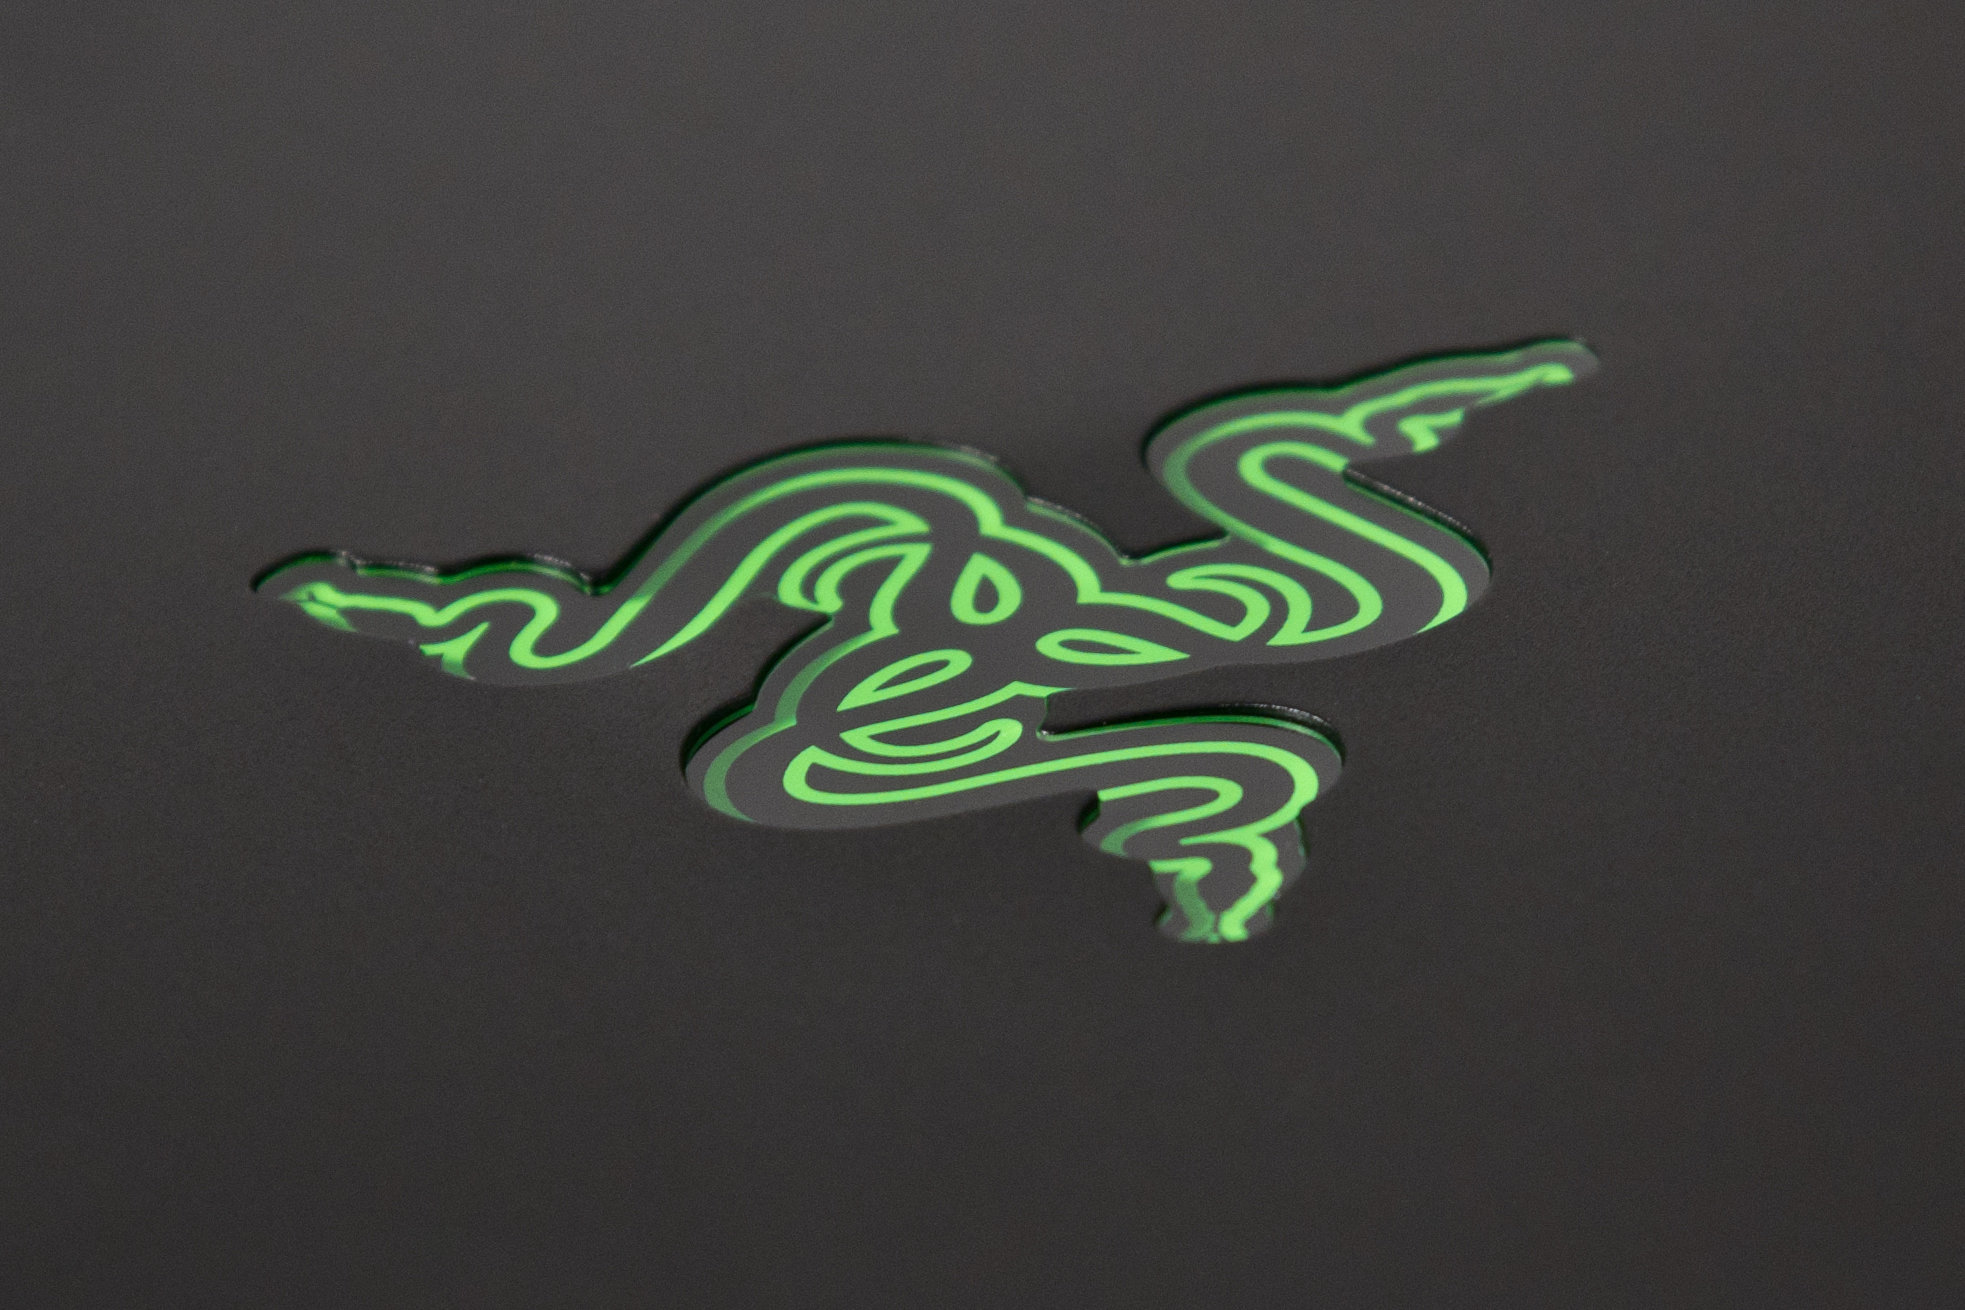 A photo of the Razer Blade Pro's case-mounted logo.